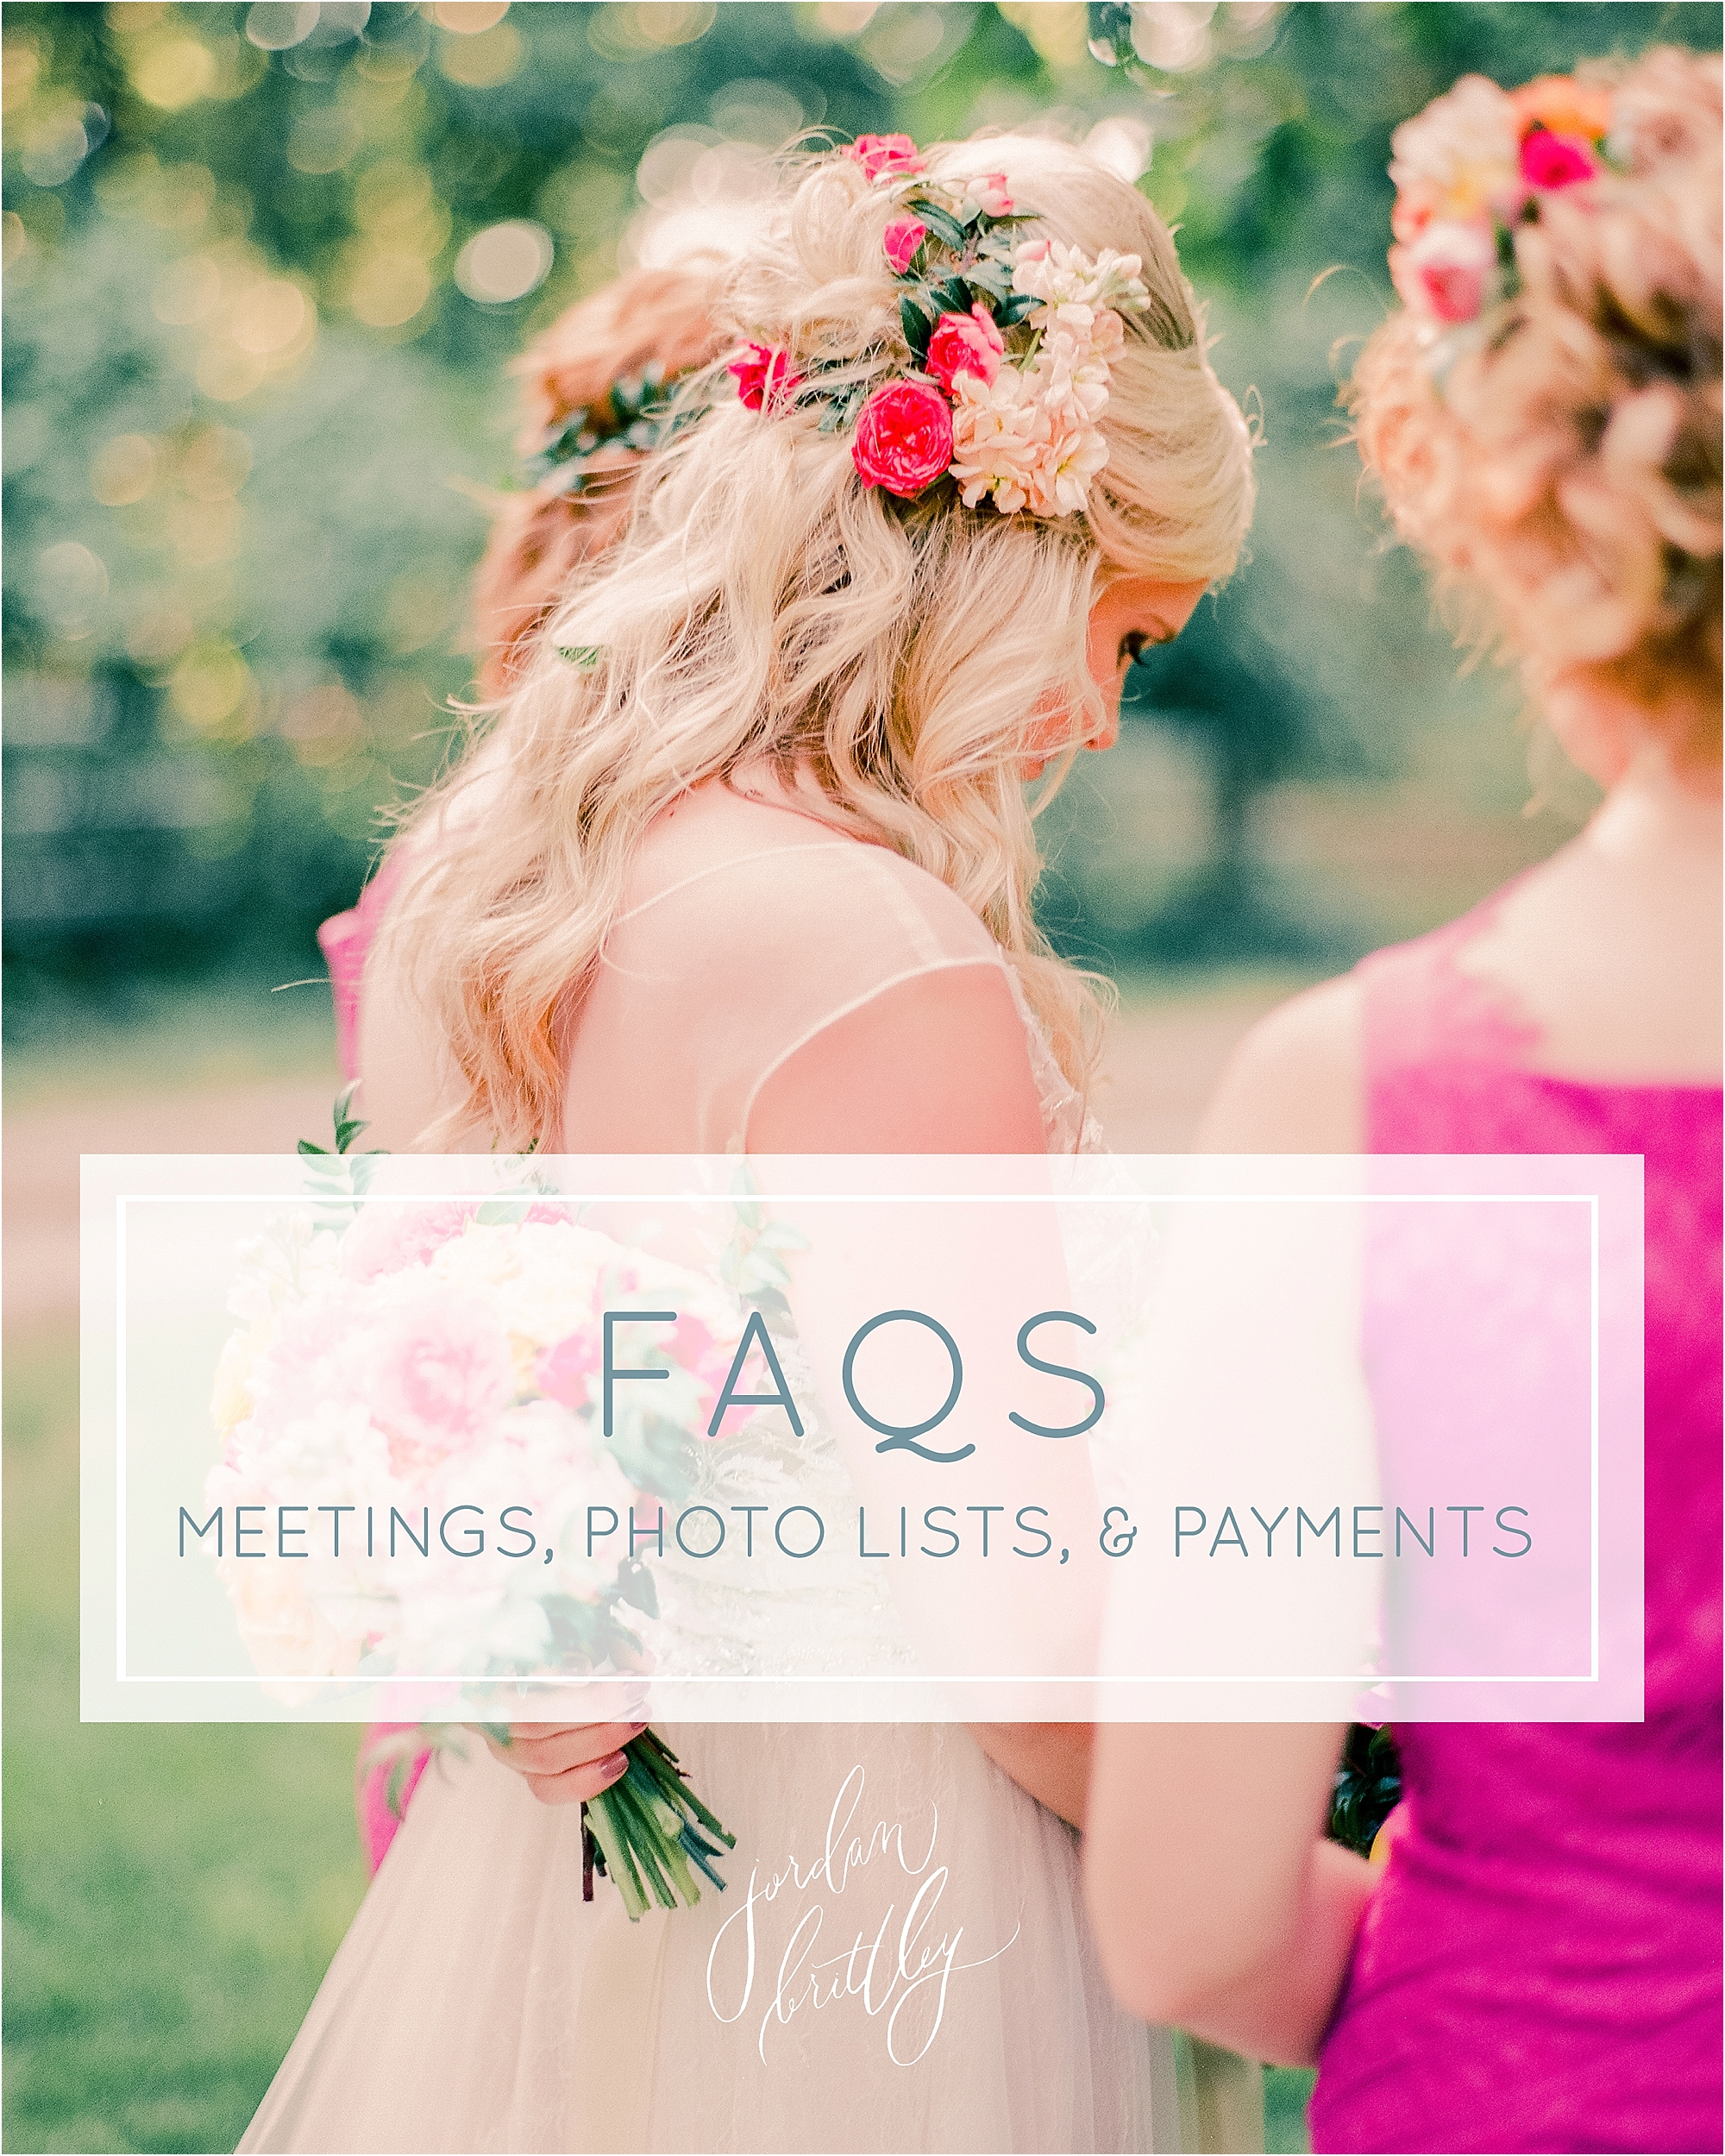 FAQs on meetings, photo lists, and payments - The Jordan Brittley Blog